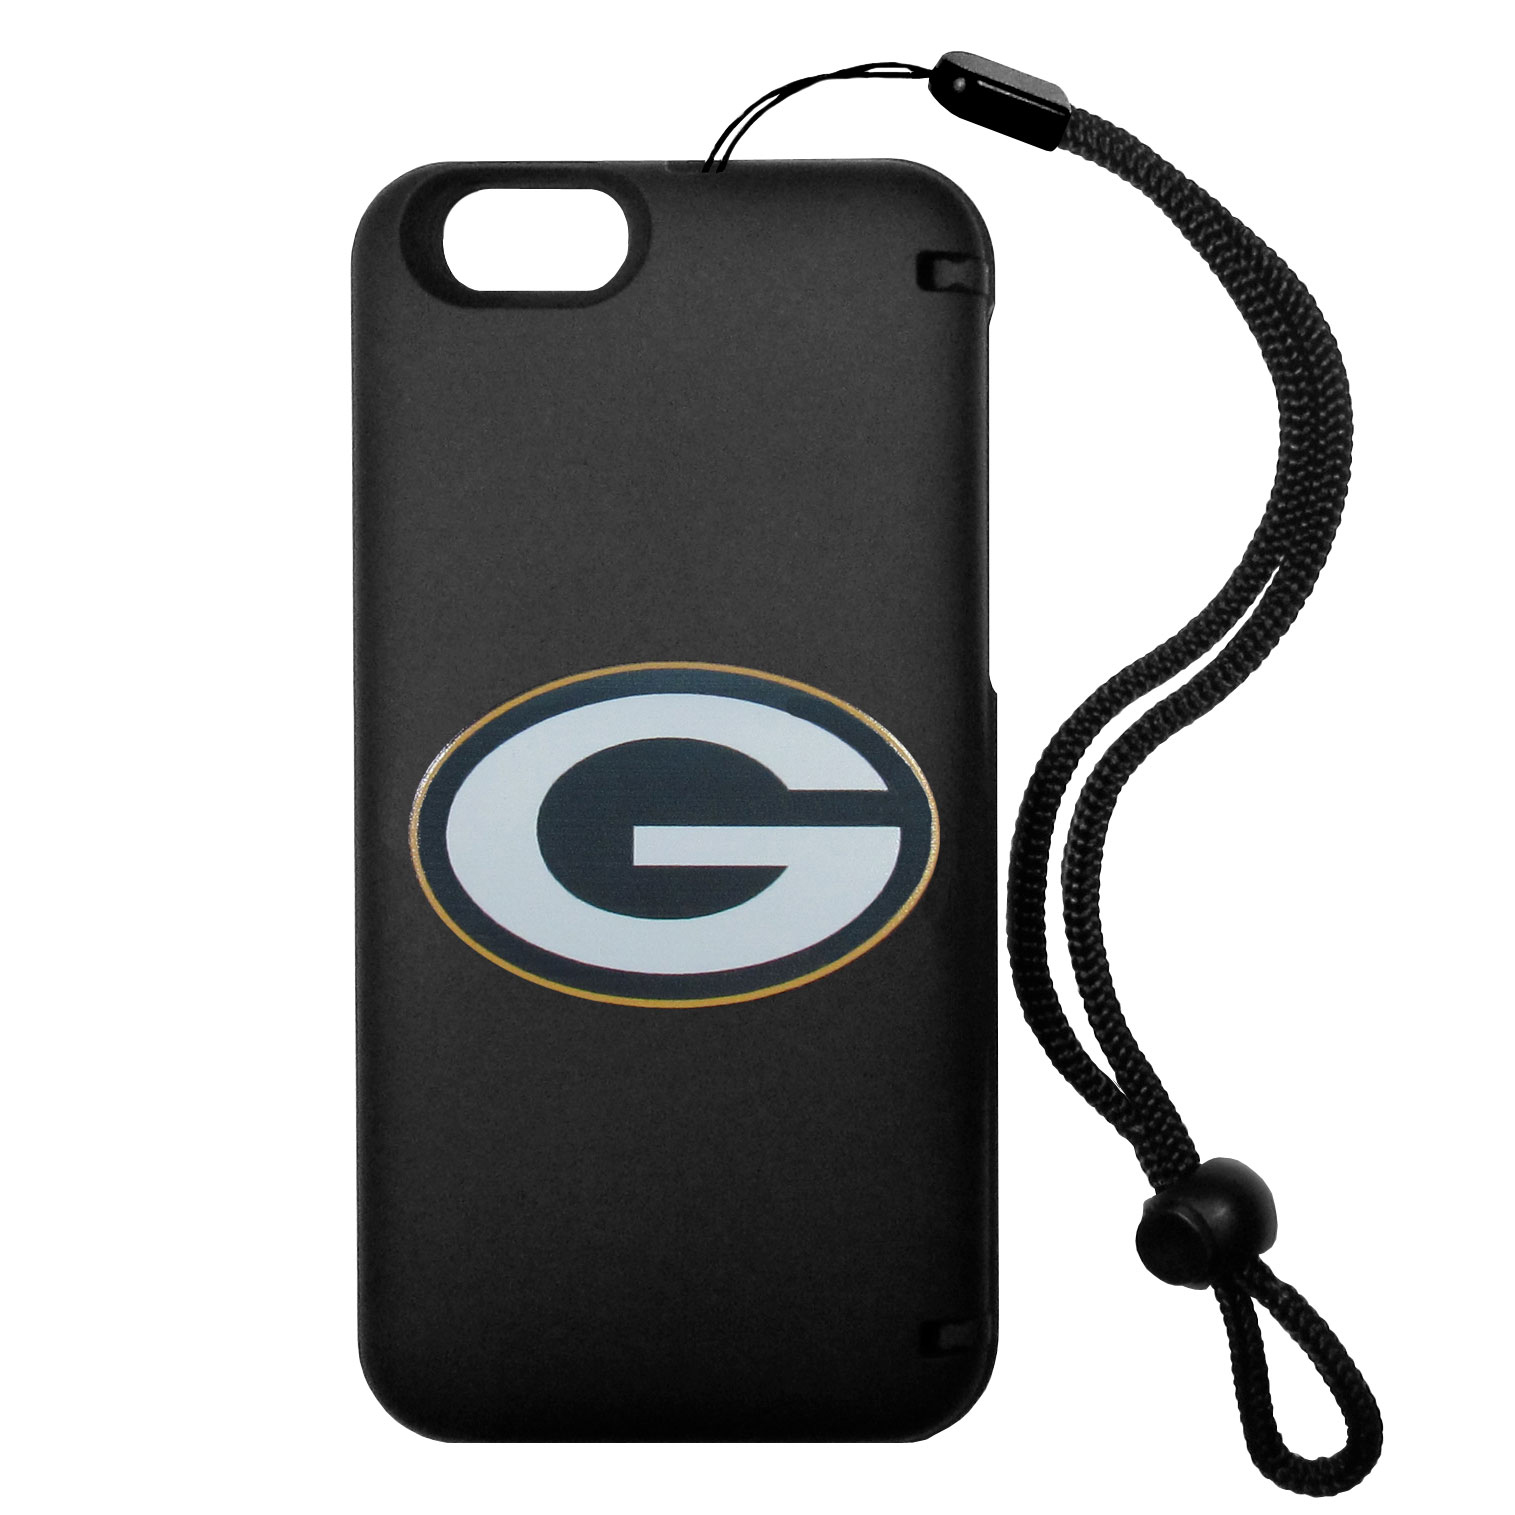 Green Bay Packers iPhone 6 Everything Case - This case really does have everything but the kitchen sink! The hidden compartment lets you keep your cards, money and tickets to the big game safe and secure and has a compact mirror so you can make sure your game face is ready to go. It also comes with a kickstand to make chatting and watching videos a breeze. The wrist strap allows you to travel with ease with your everything case. If that's not enough, it also comes with the Green Bay Packers logo printed in expert detail on the front.